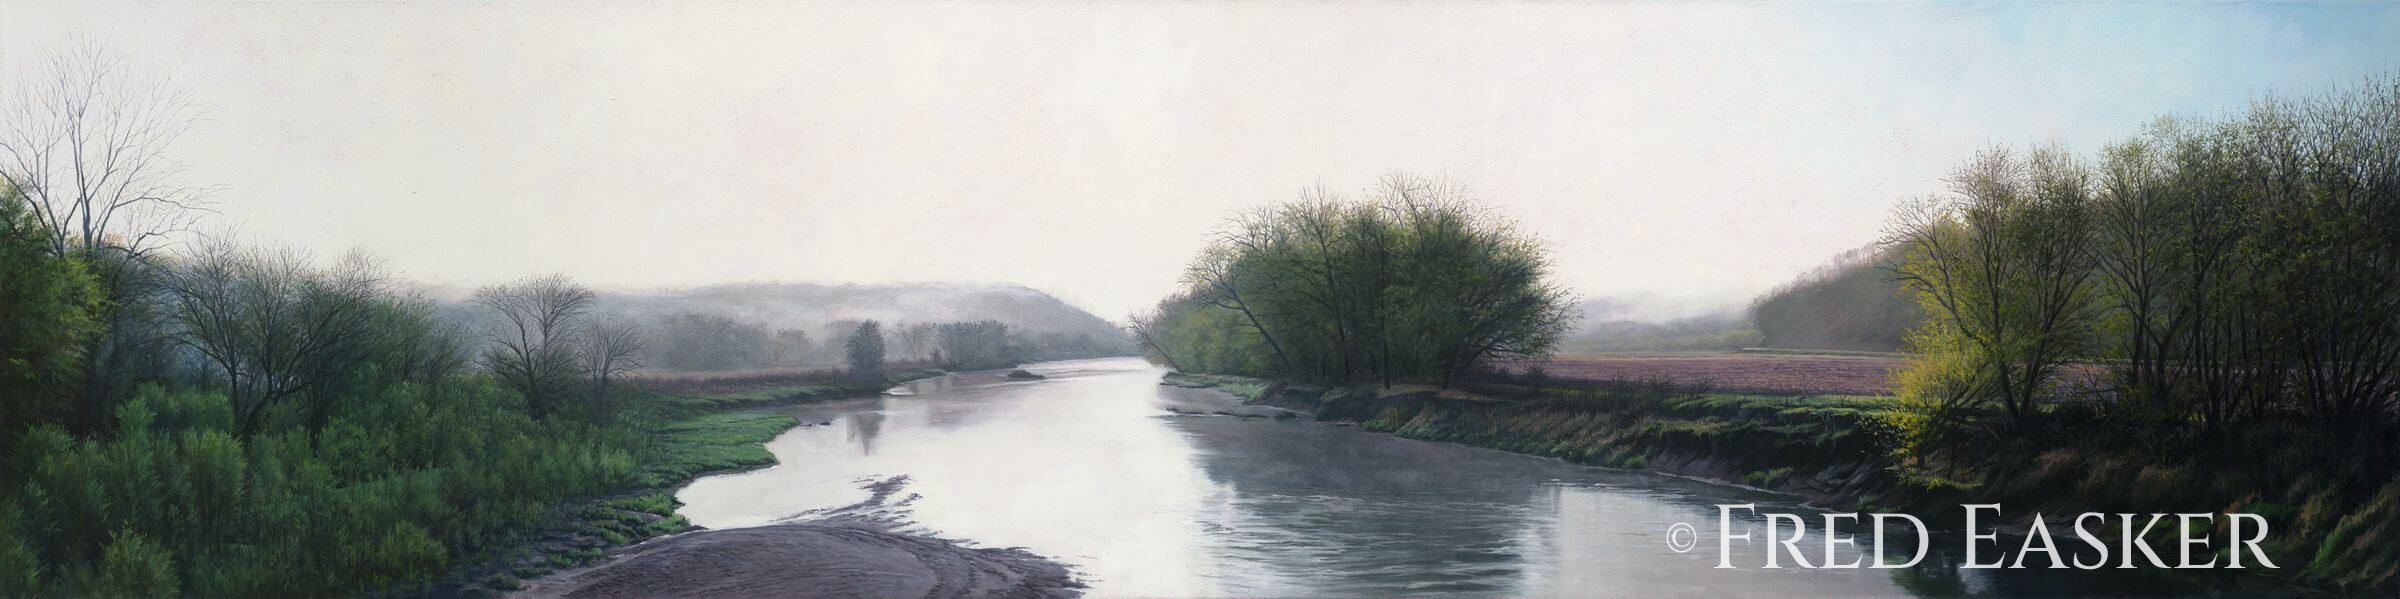 Turkey River Spring by Fred Easker